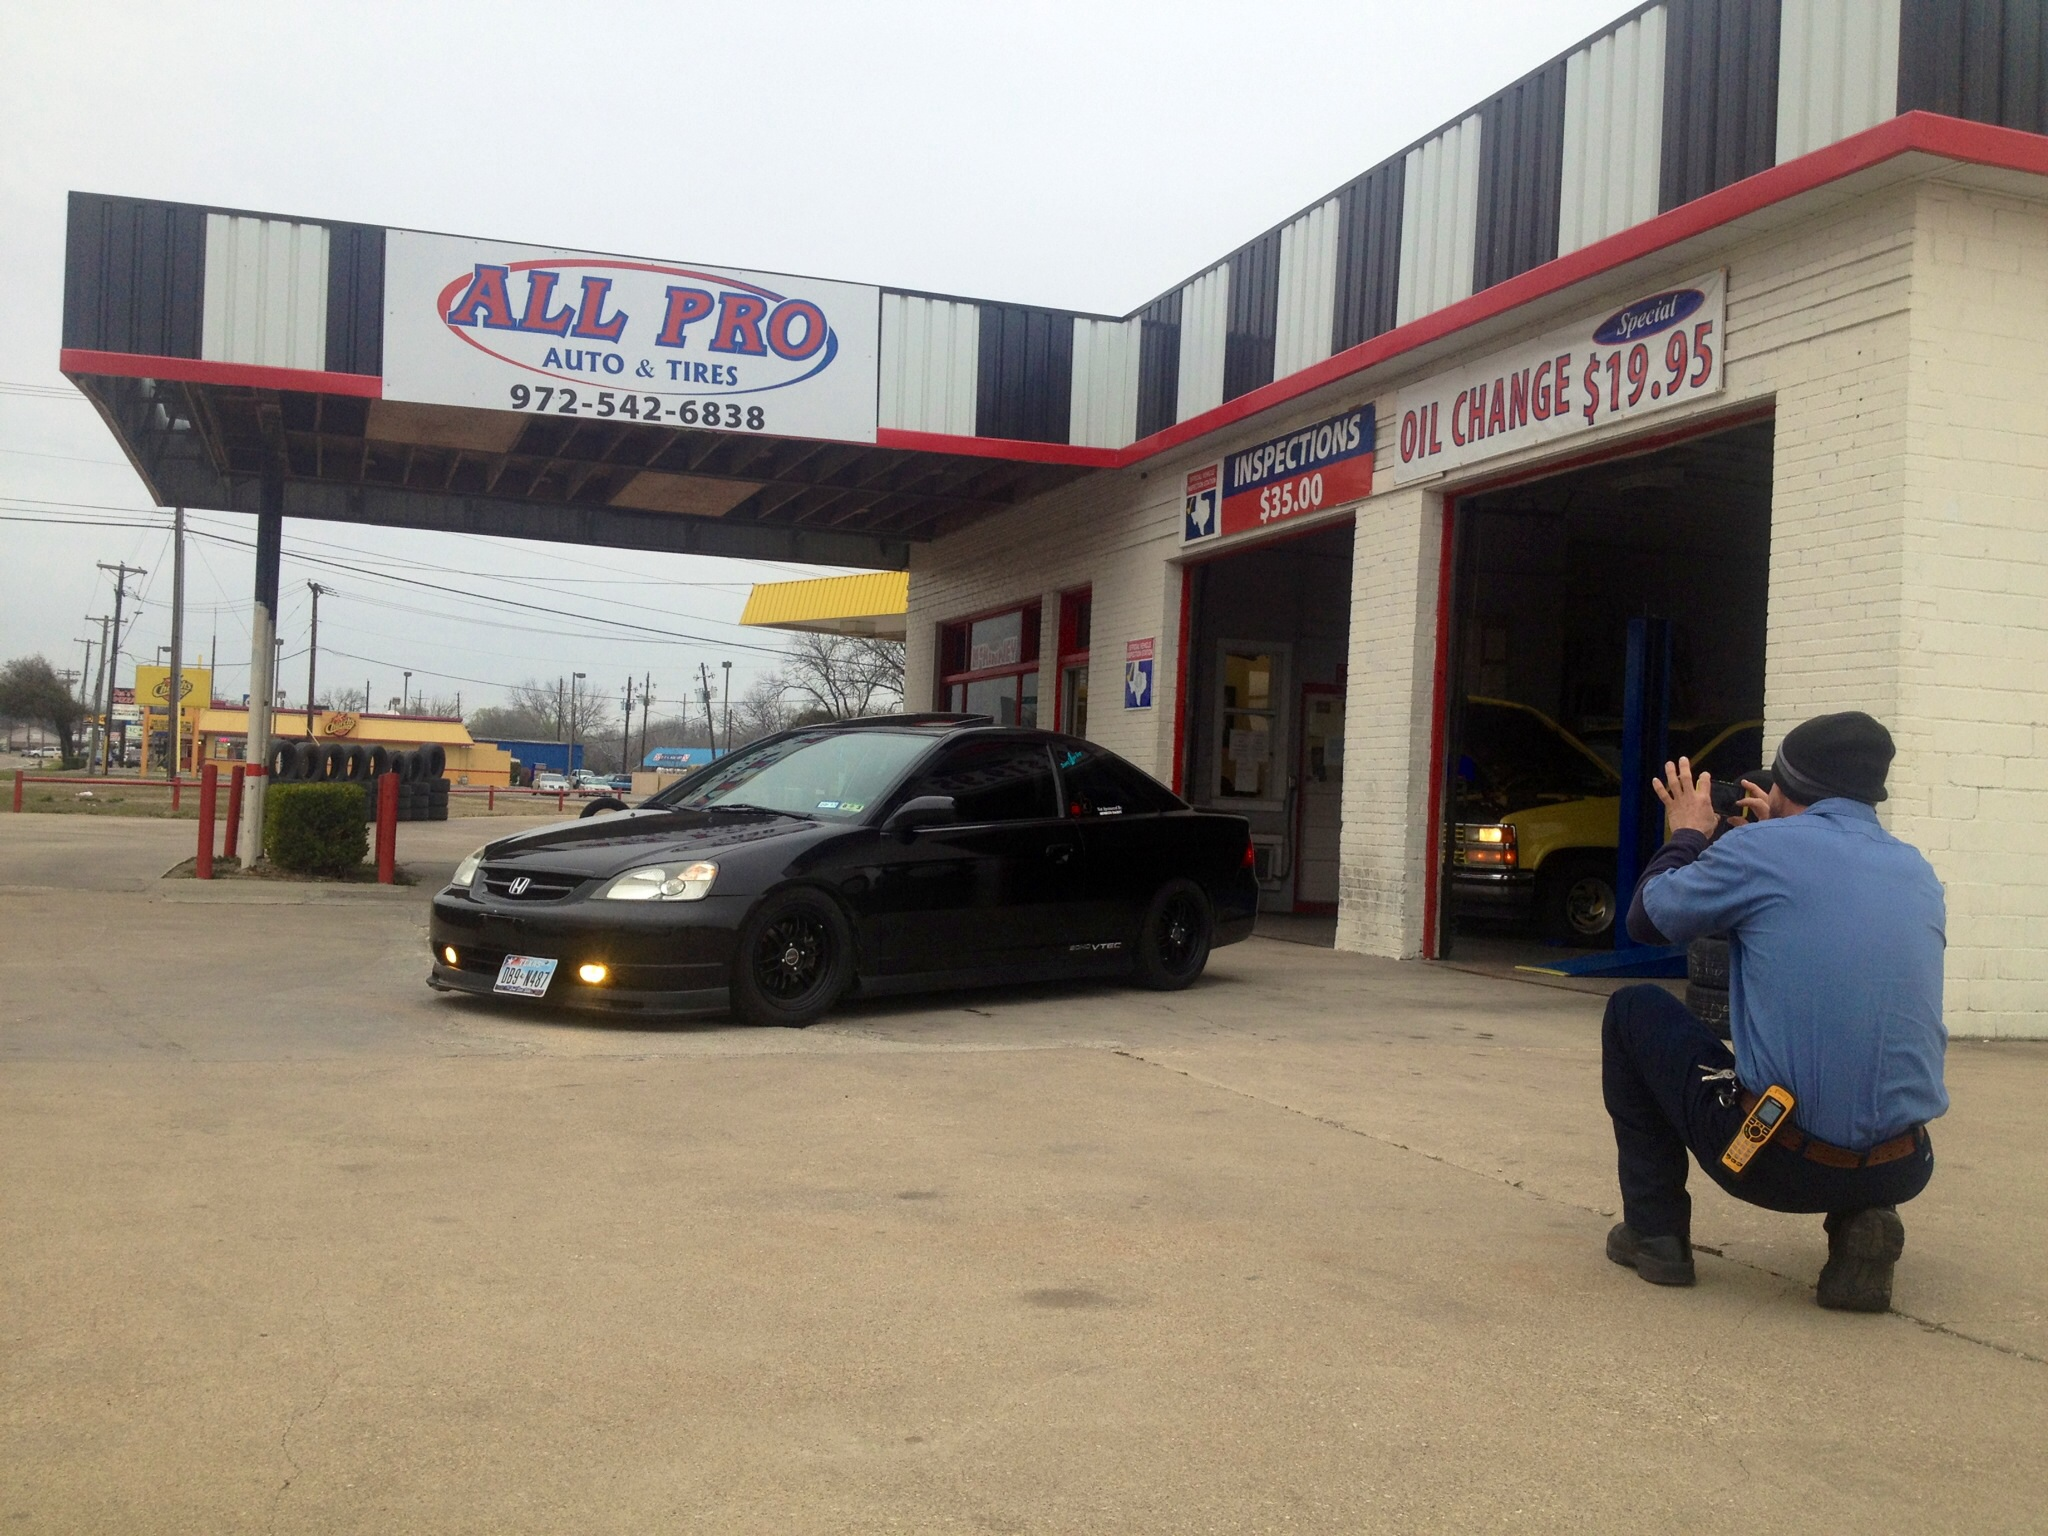 All Pro Automotive >> All Pro Auto Tires 1312 N Tennessee St Mckinney Tx 75069